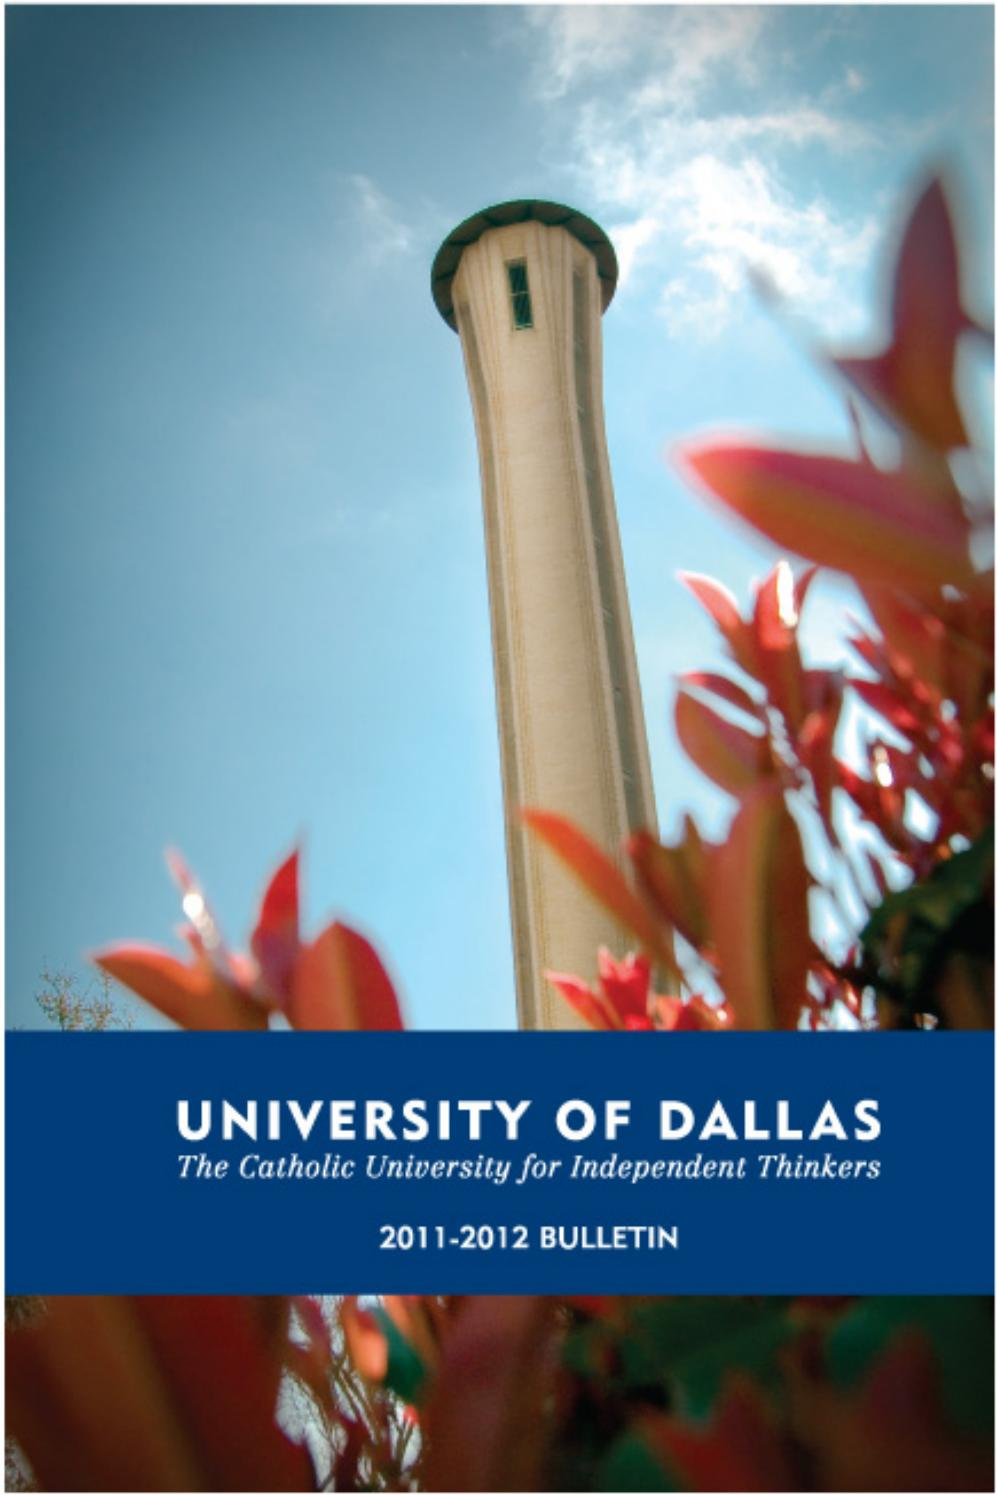 2011 2012 UD Bulletin by University of Dallas - issuu